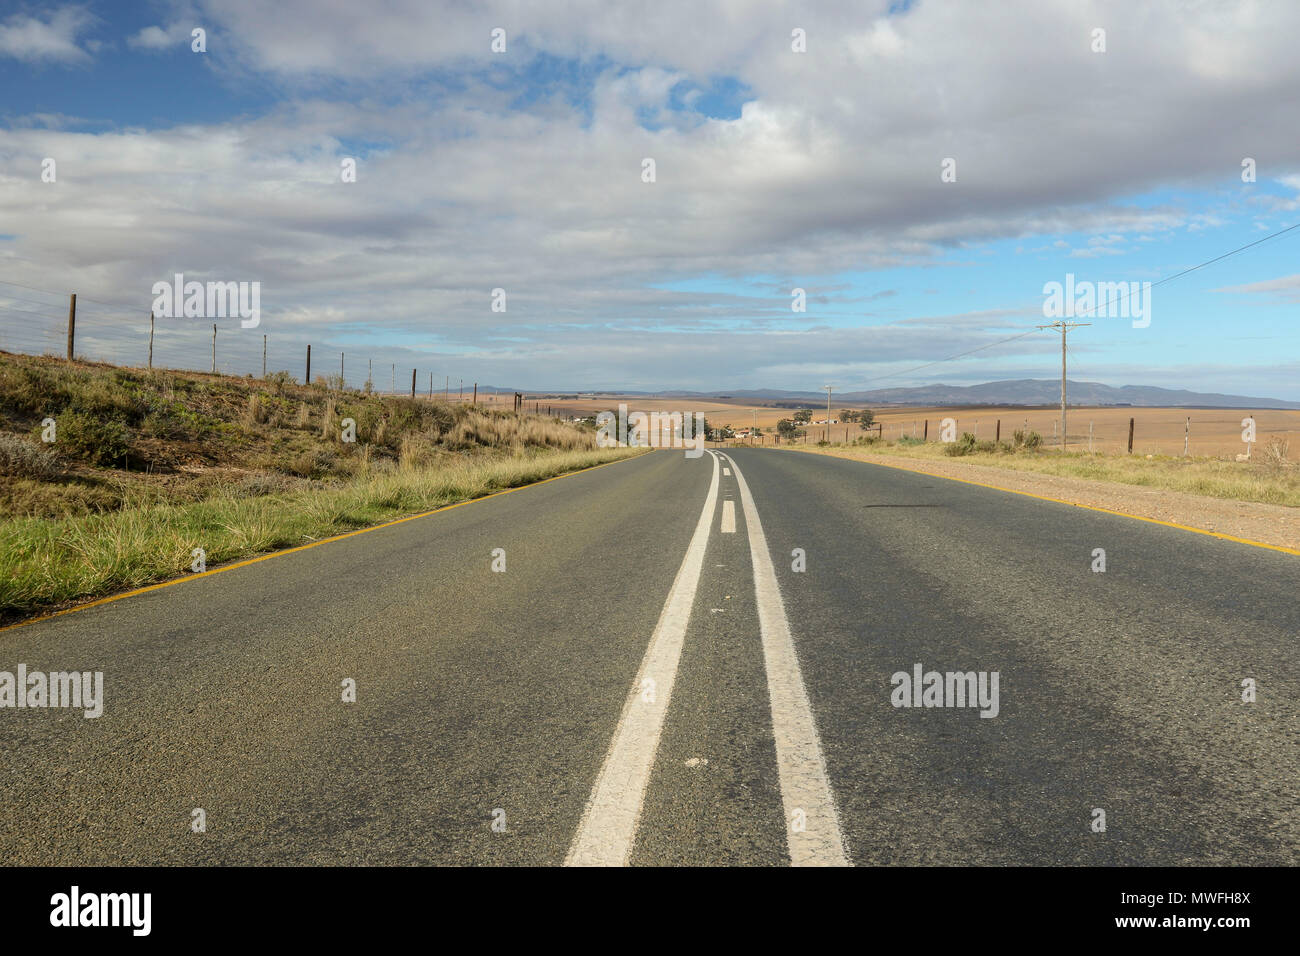 Receding road lane markings in the landscape, garden route, south africa - Stock Image